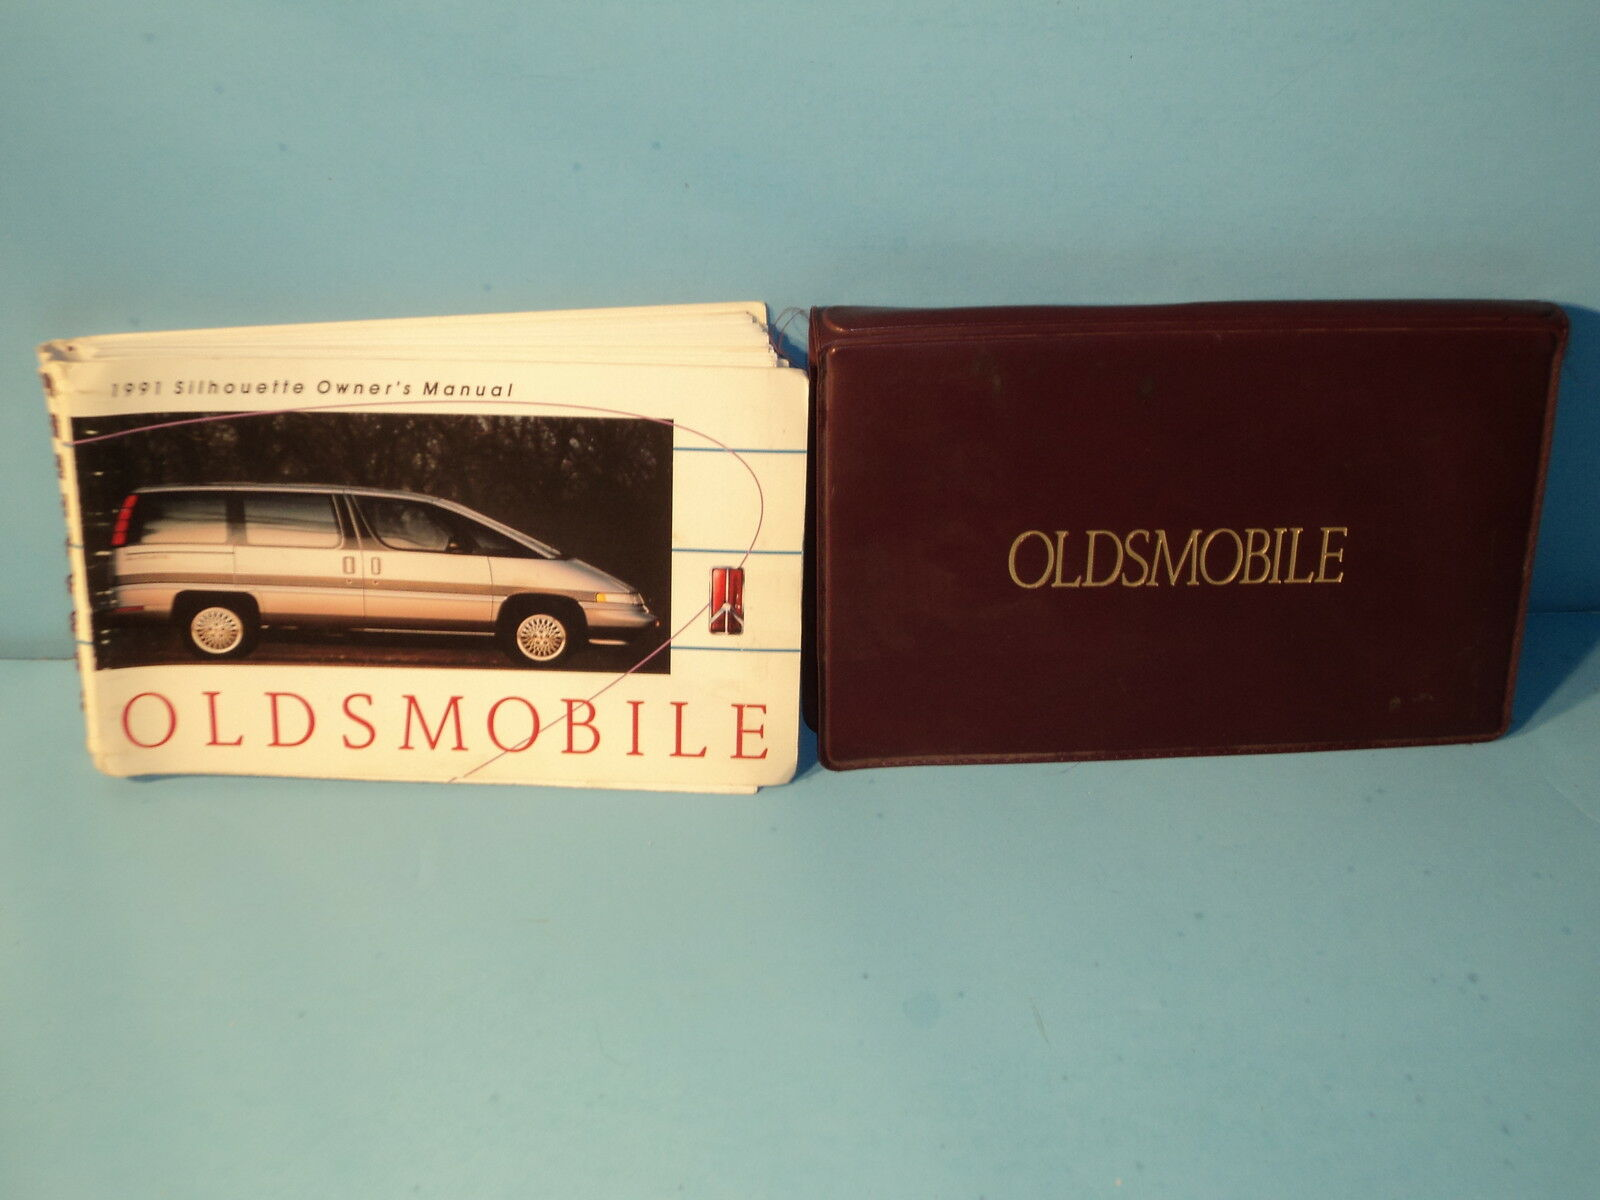 91 1991 Oldsmobile Silhouette owners manual 1 of 1Only 1 available ...